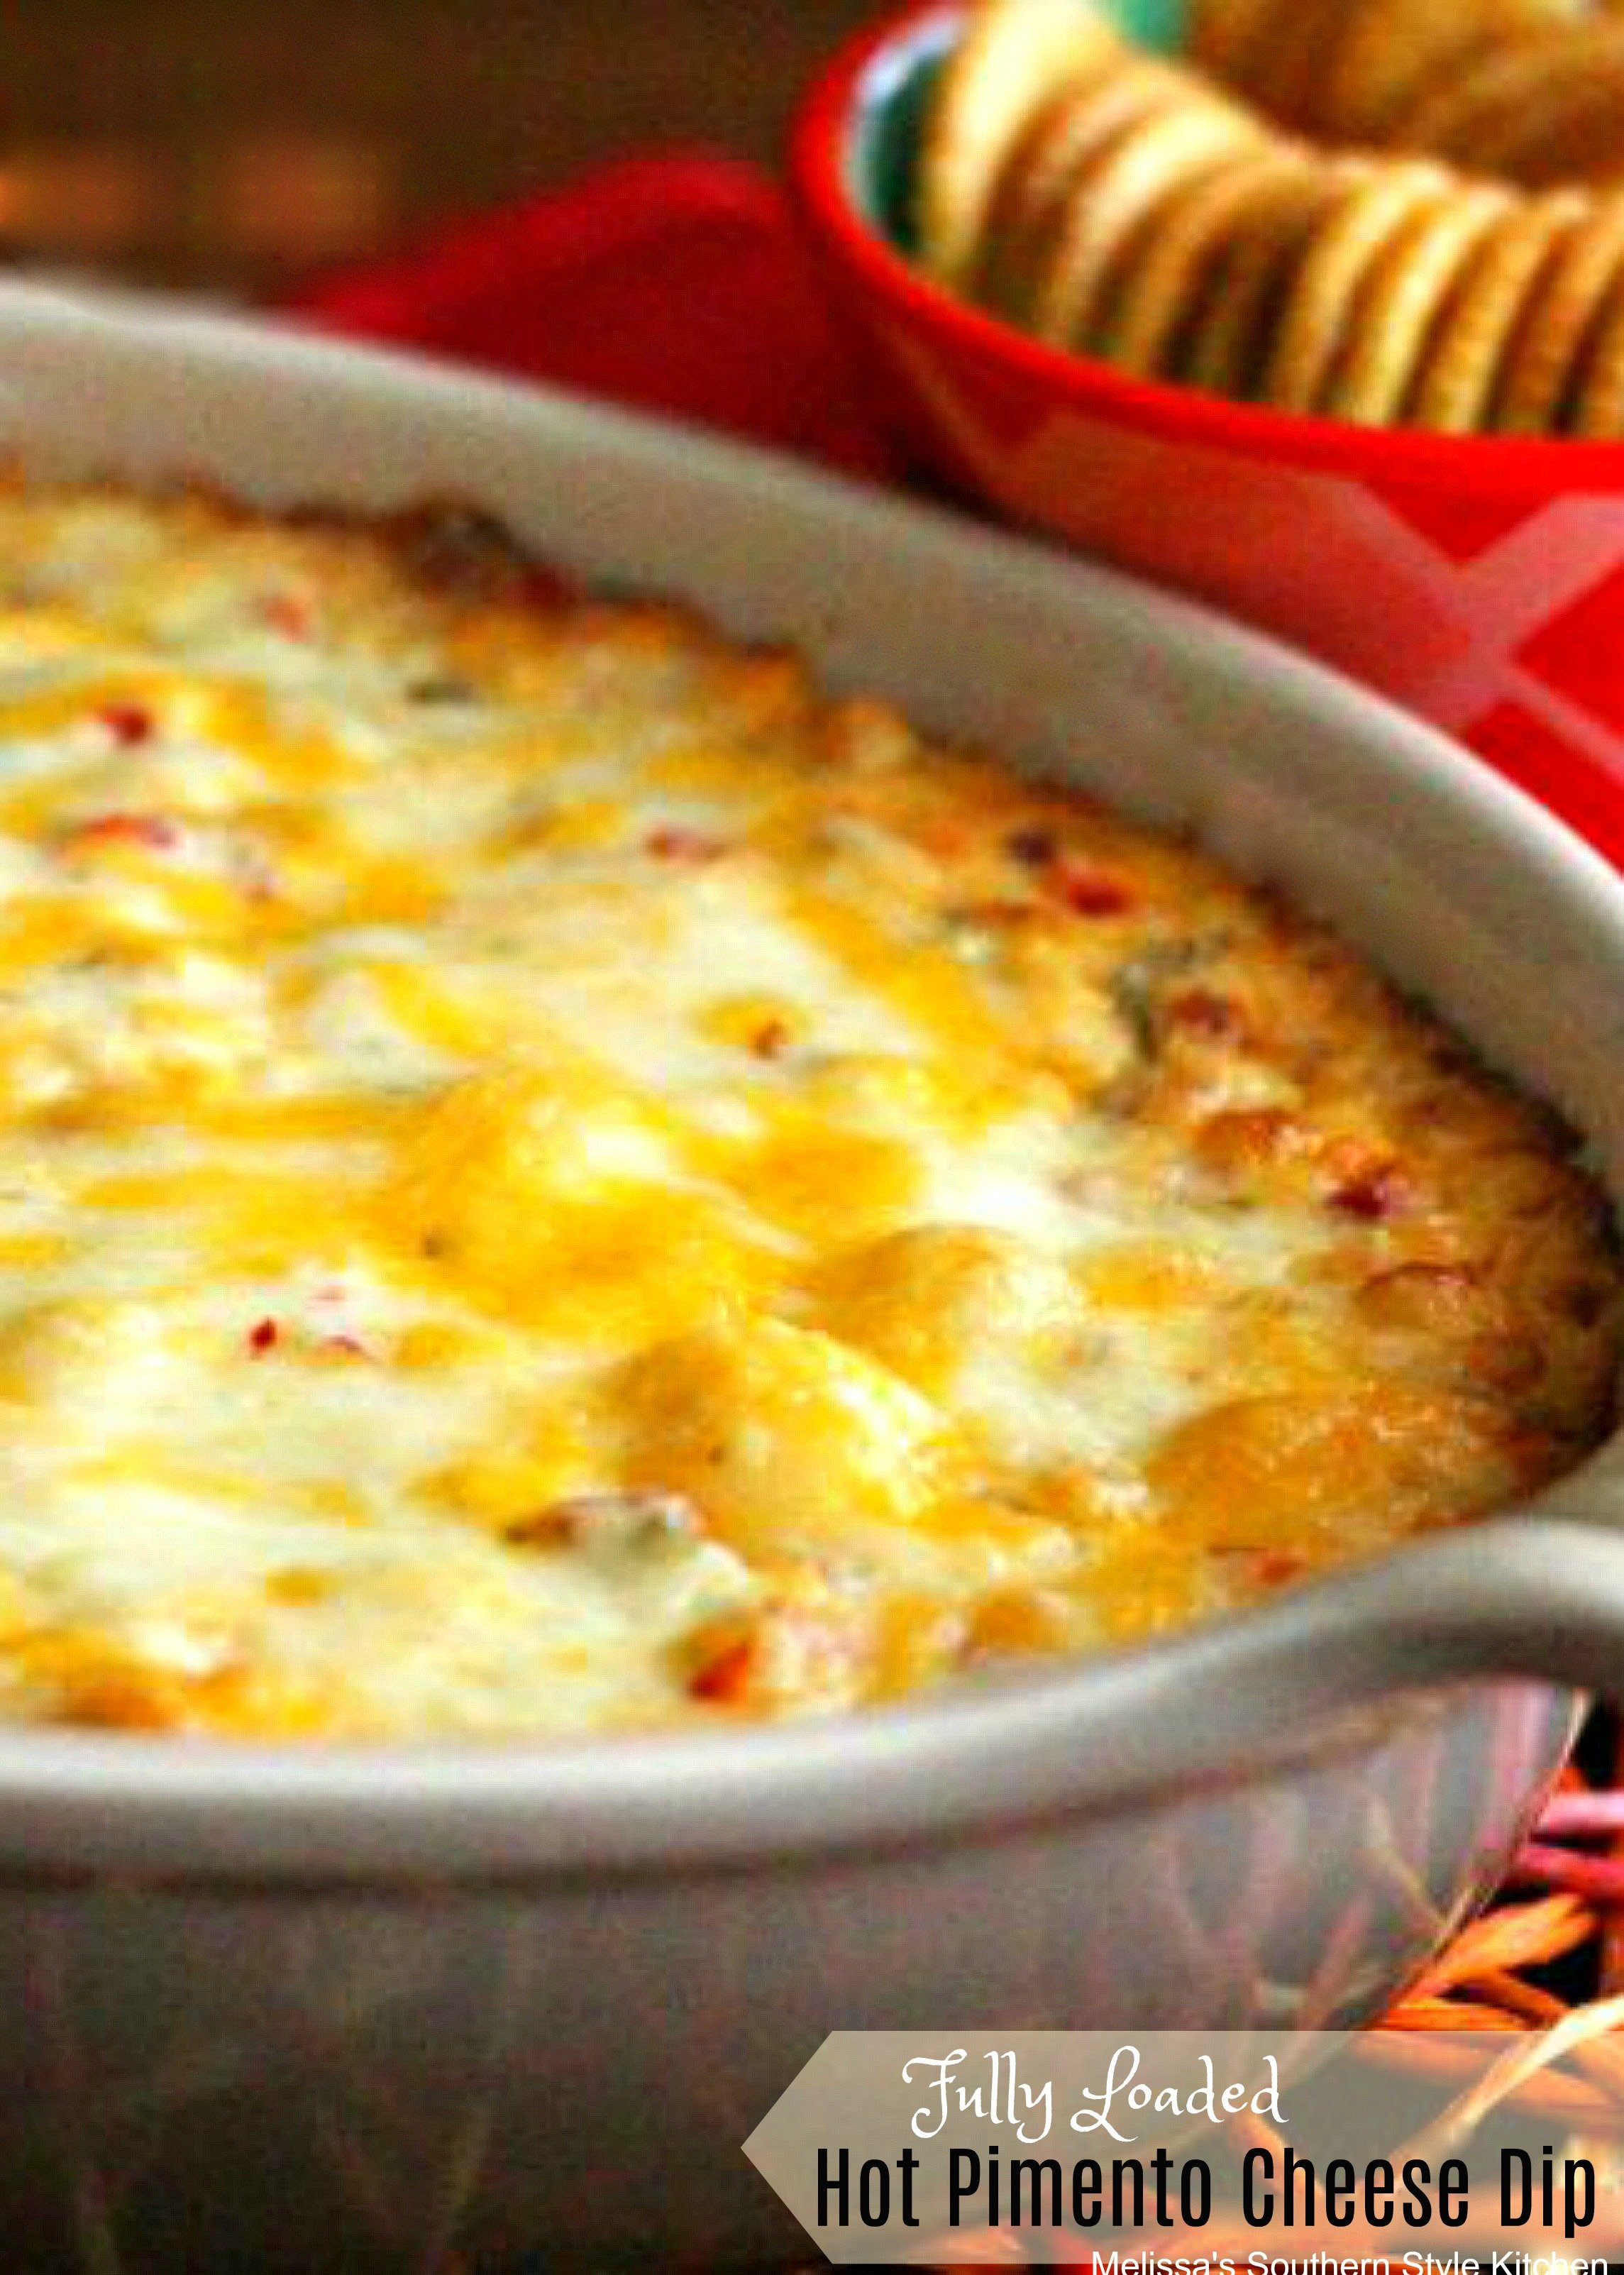 Fully Loaded Hot Pimento Cheese Dip